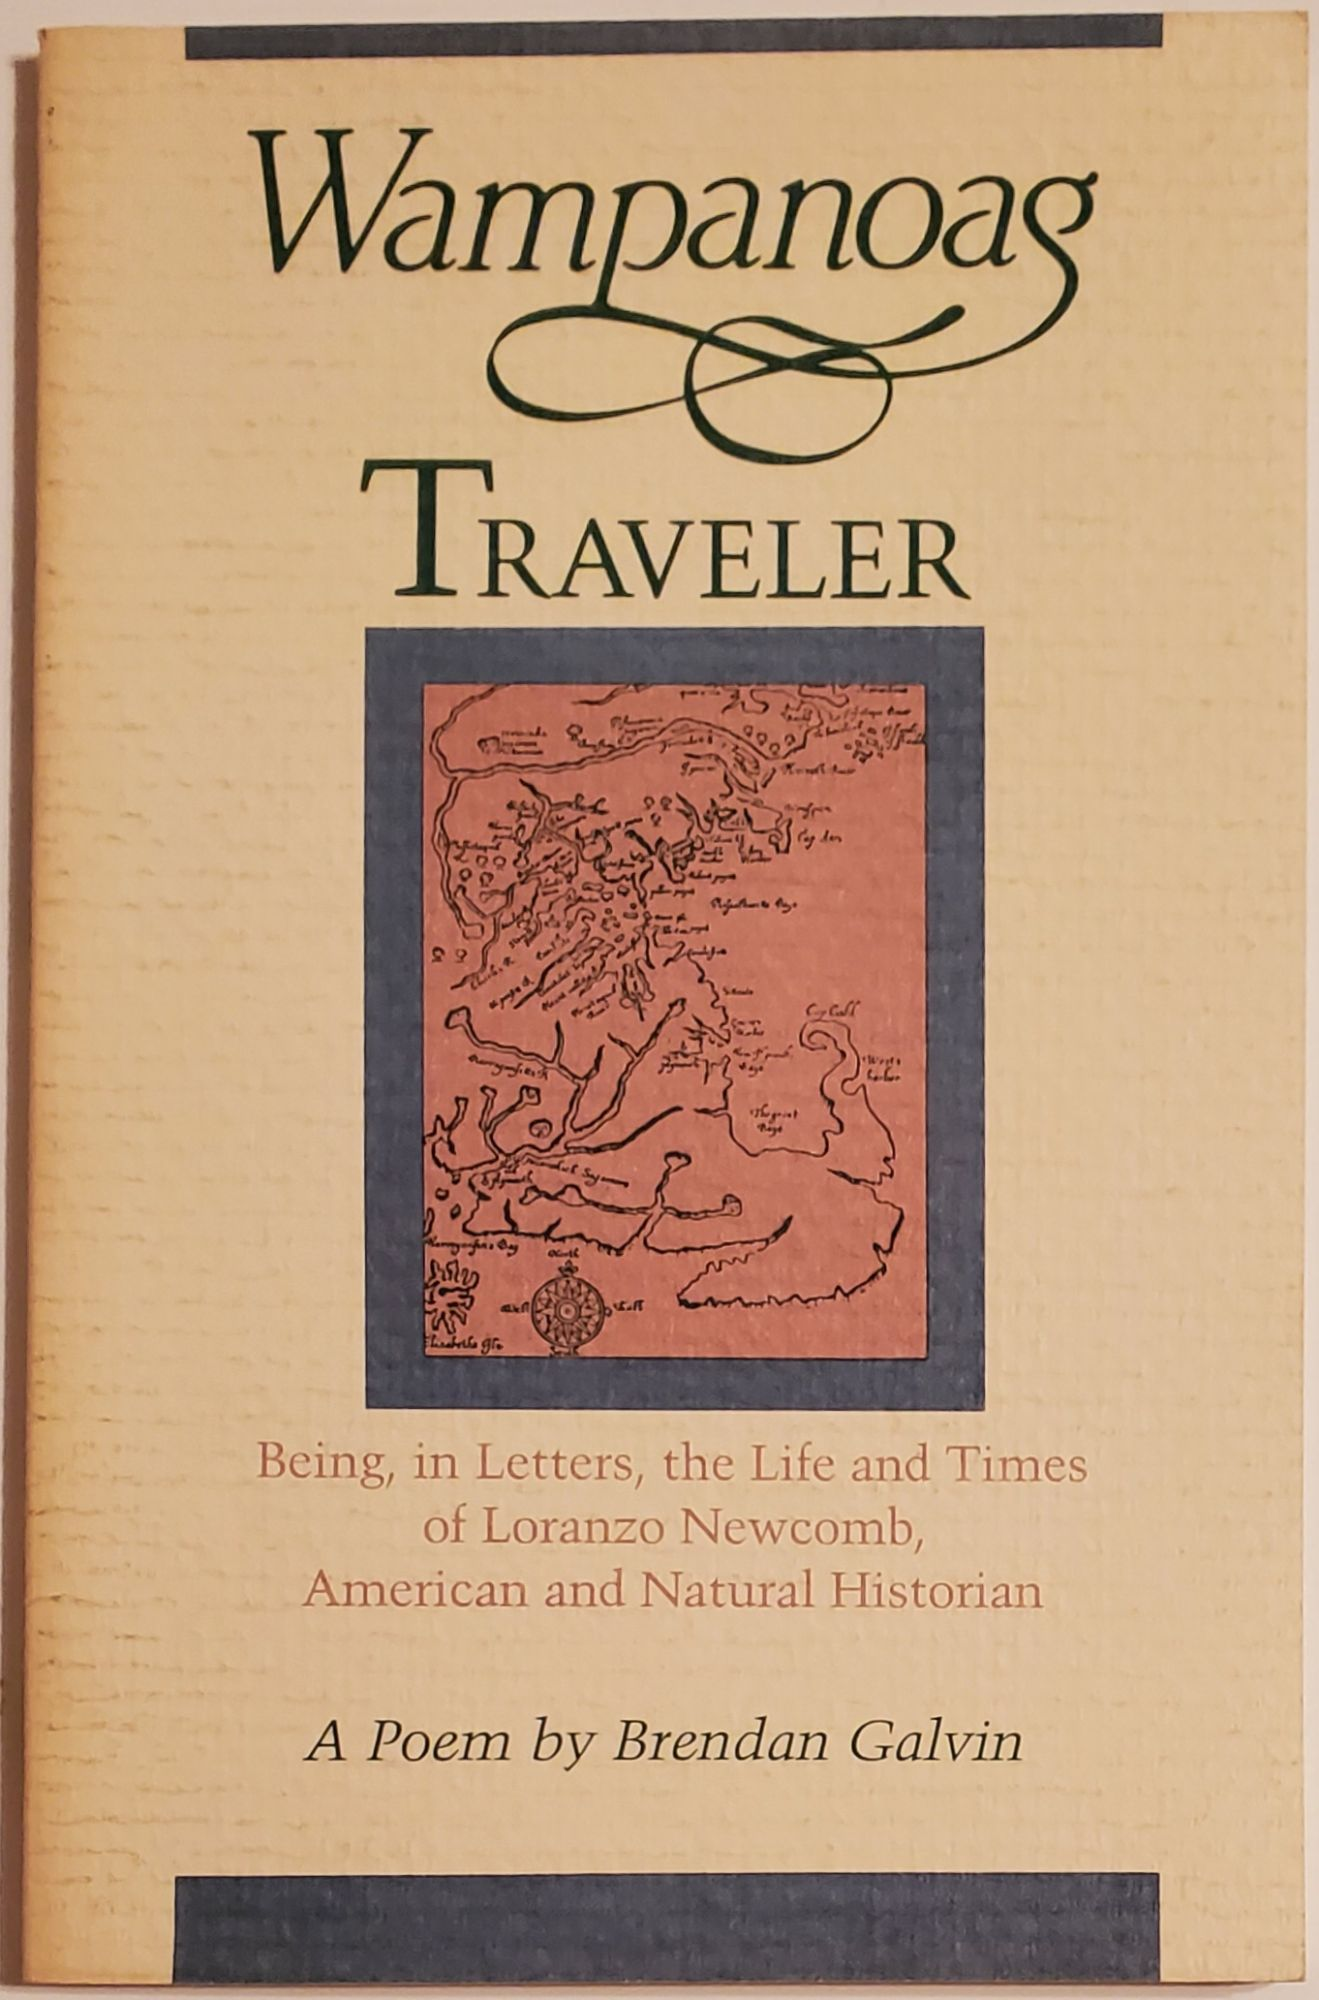 WAMPANOAG TRAVELER. Being, in Letters, the Life and Times of Loranzo Newcomb, American and Natural Historian. Brendan Galvin.